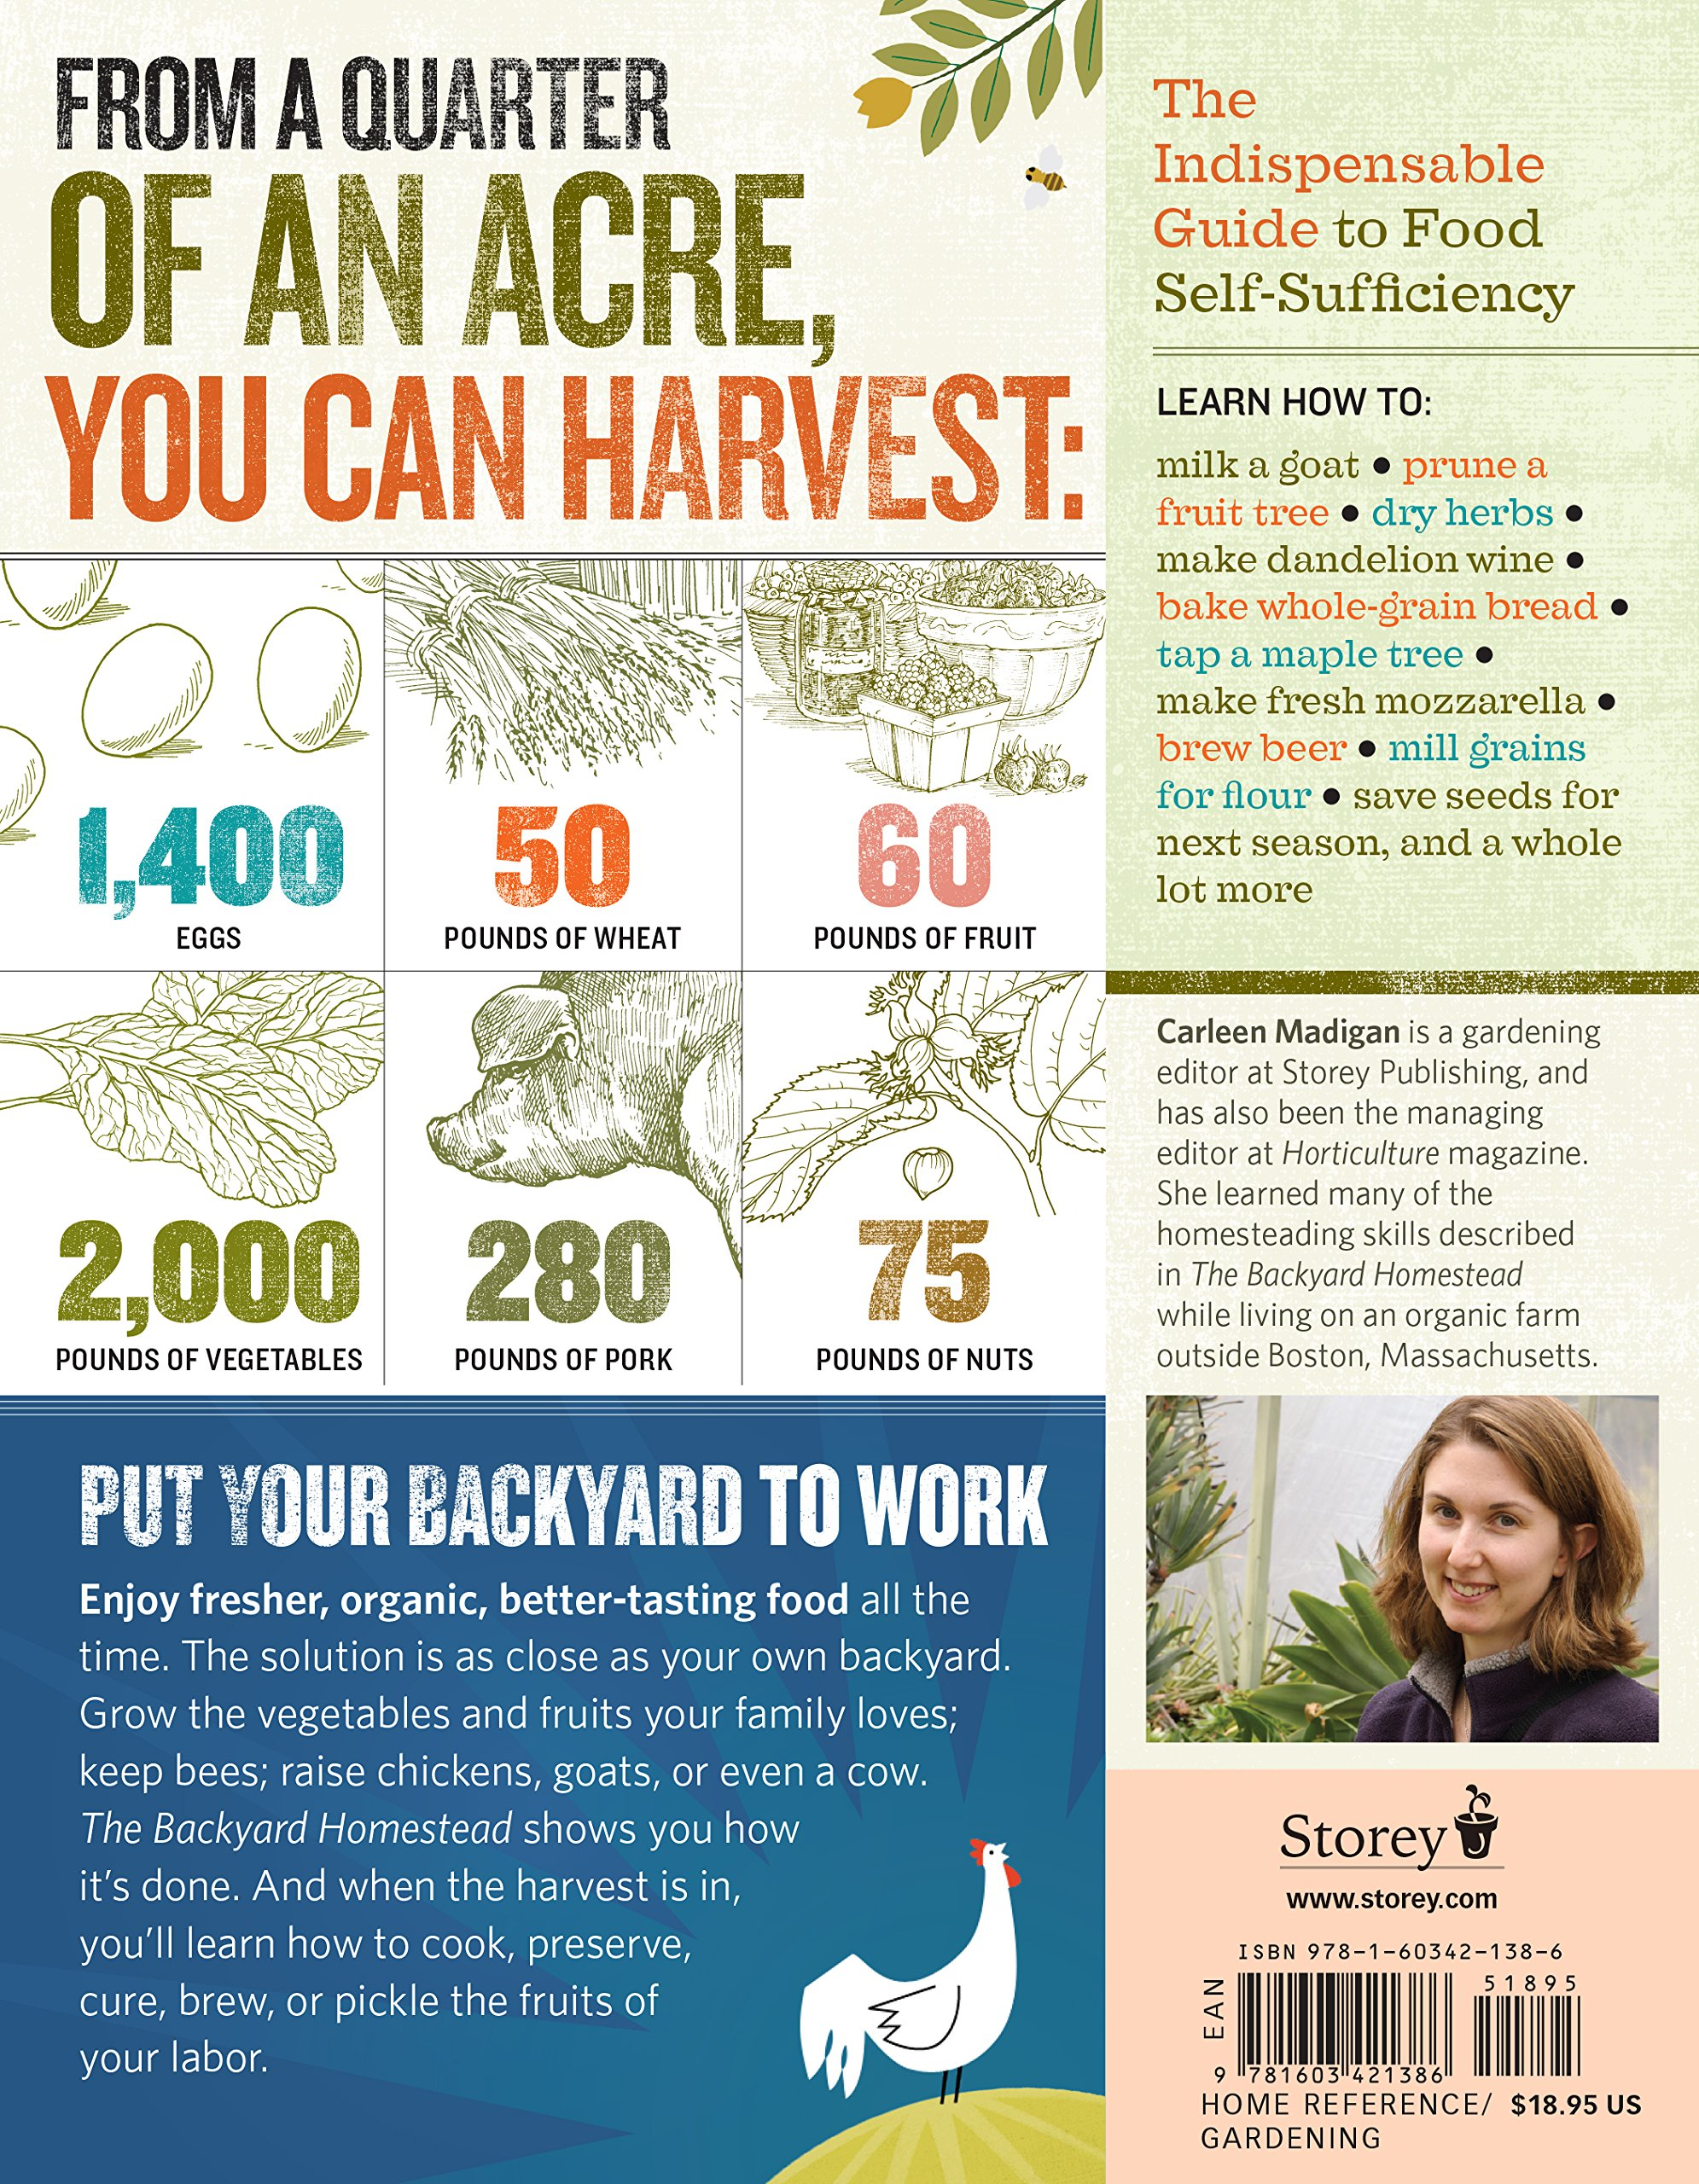 the backyard homestead produce all the food you need on just a